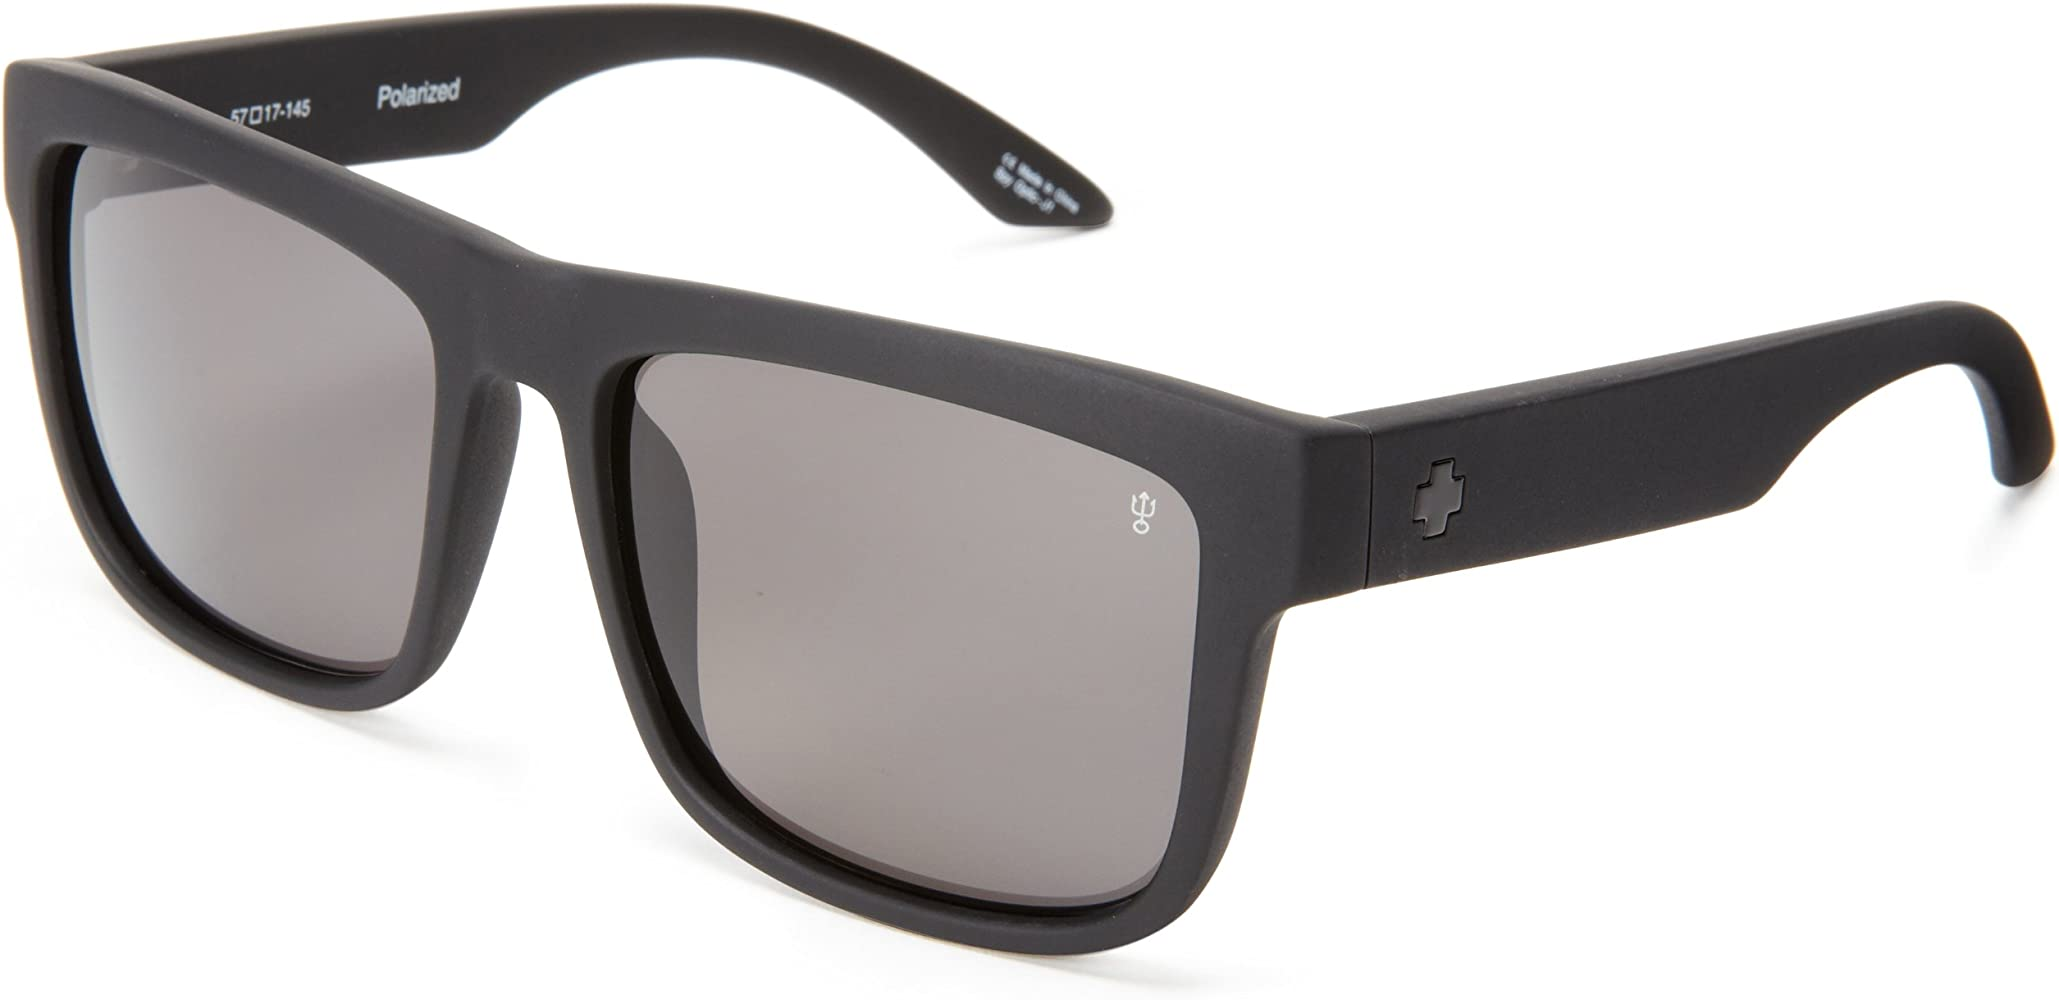 c7f323f76567 SPY Optic Discord Sunglasses for Men and for Women | Polarized Styles  Available | Shatter Resistant